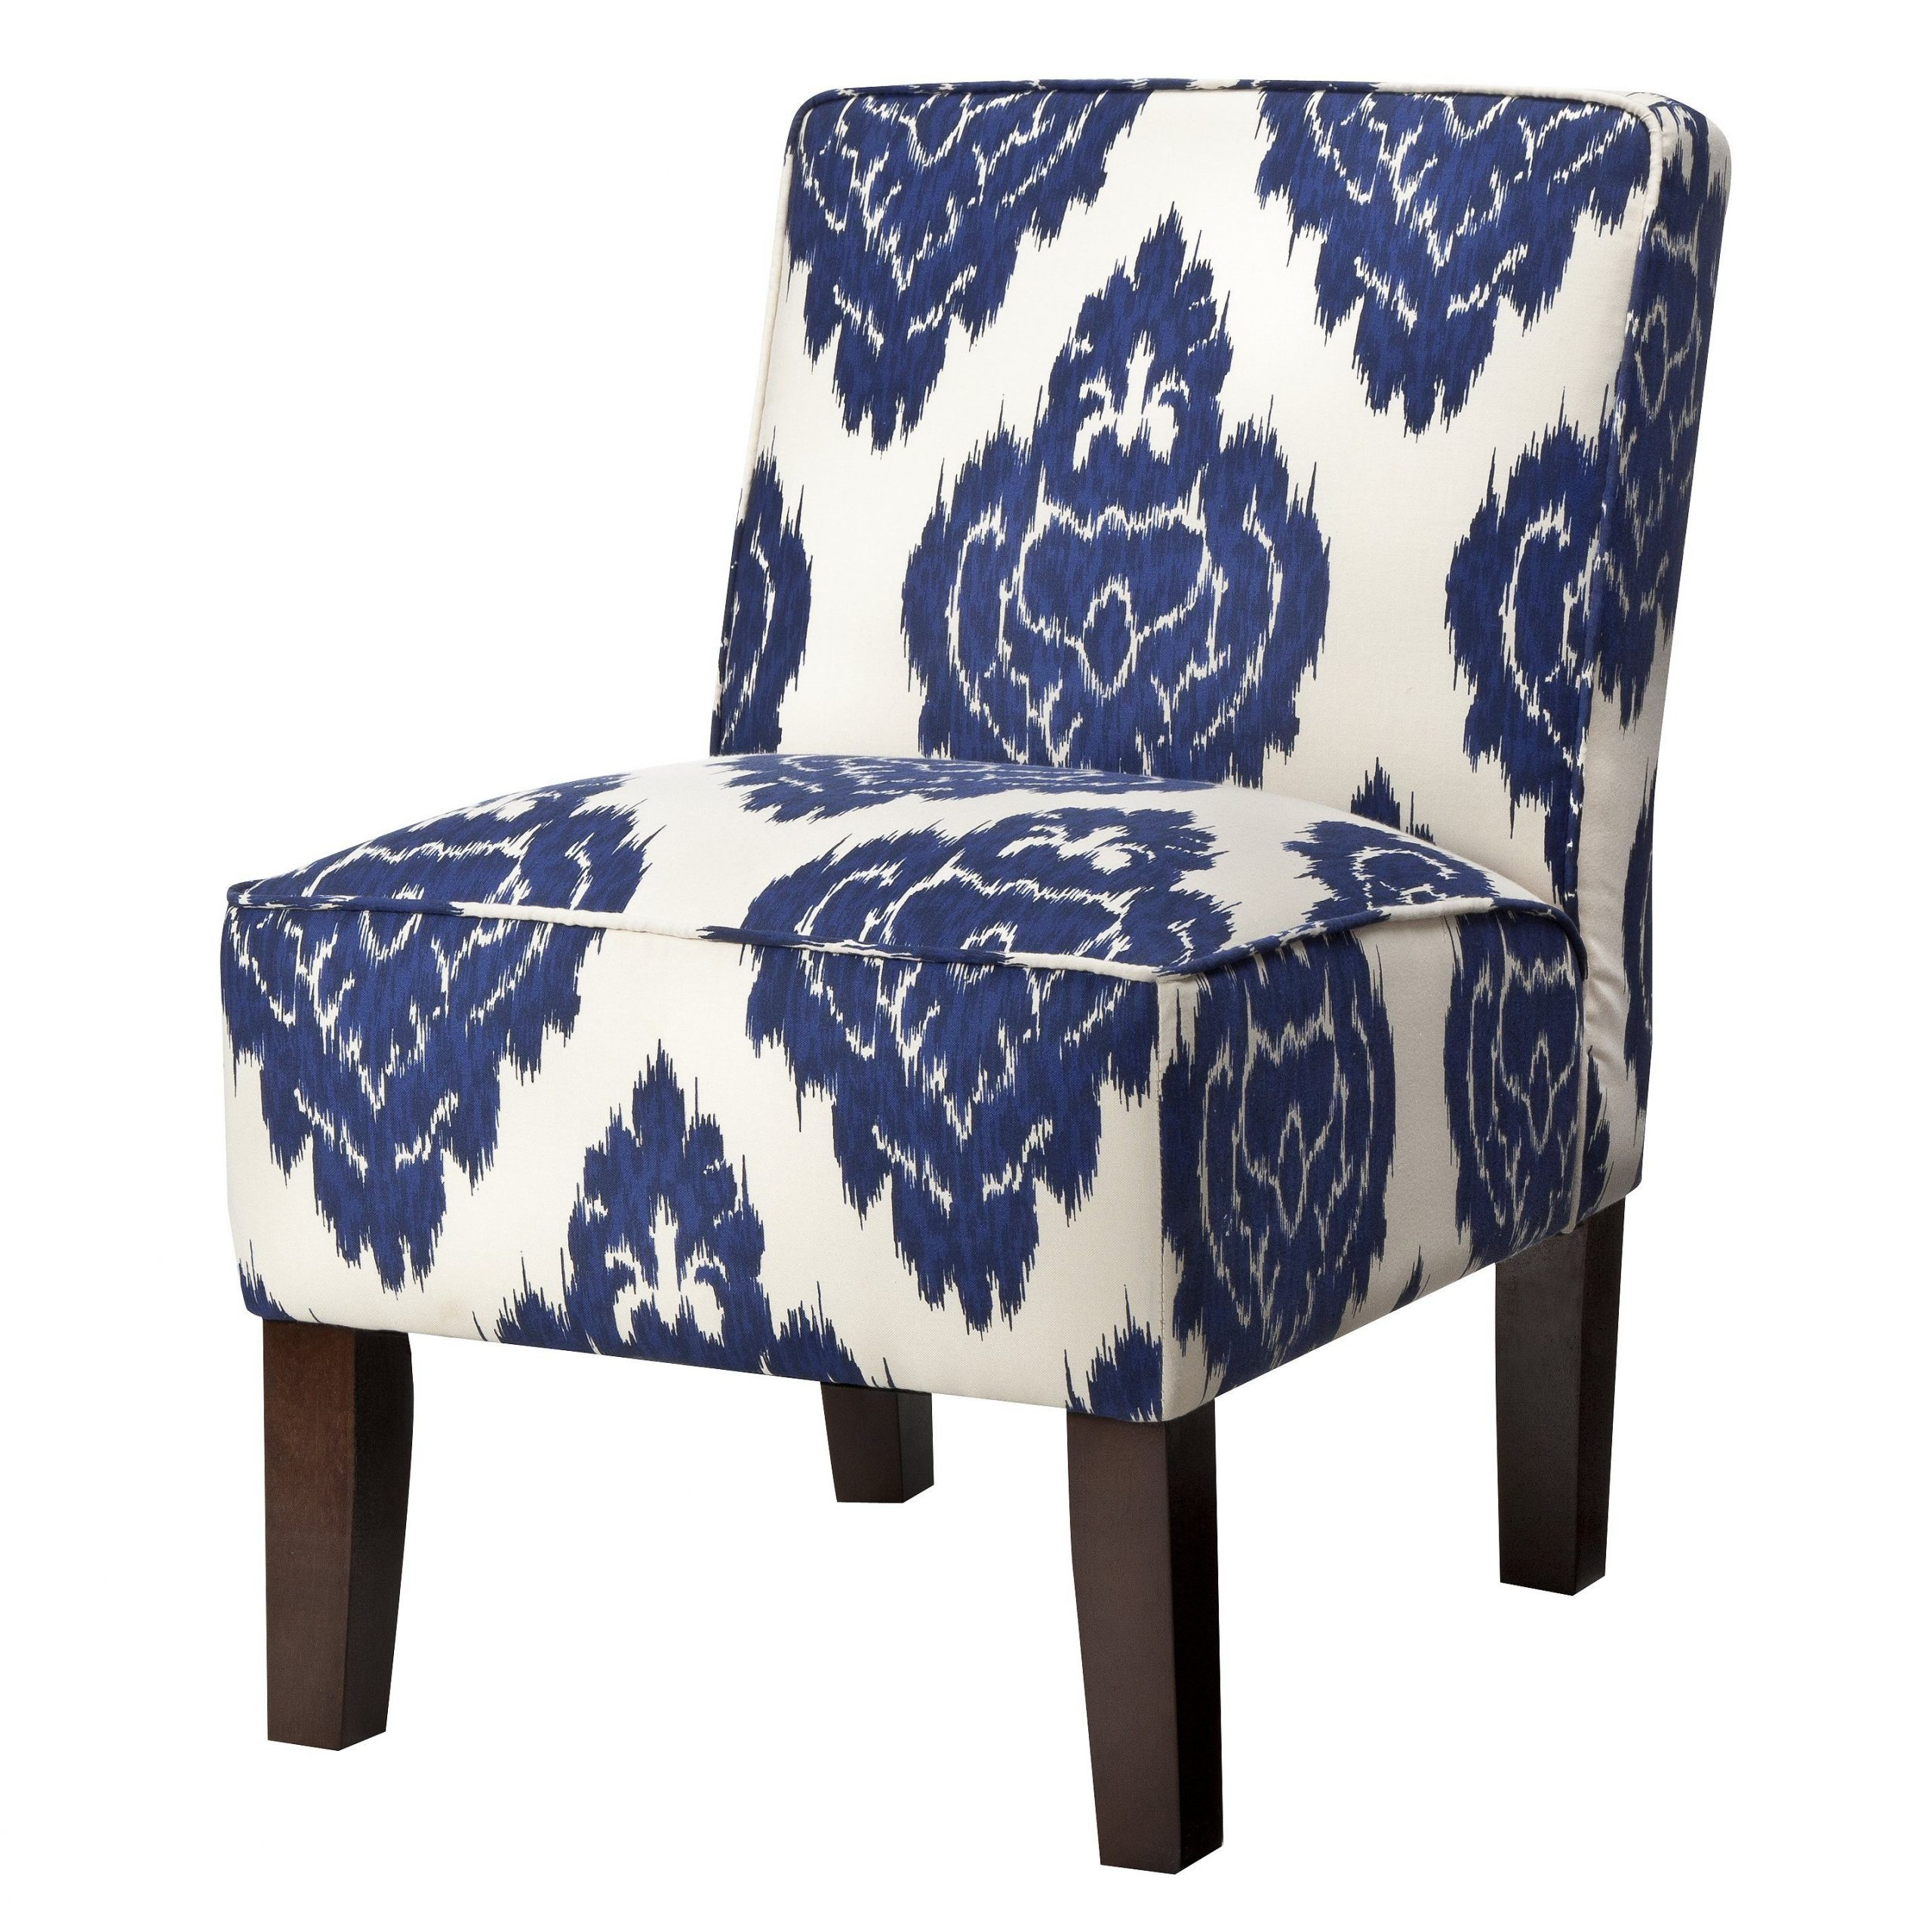 Burke Armless Slipper Chair – Blue Diamonds | Upholstered Inside Armless Upholstered Slipper Chairs (View 5 of 15)